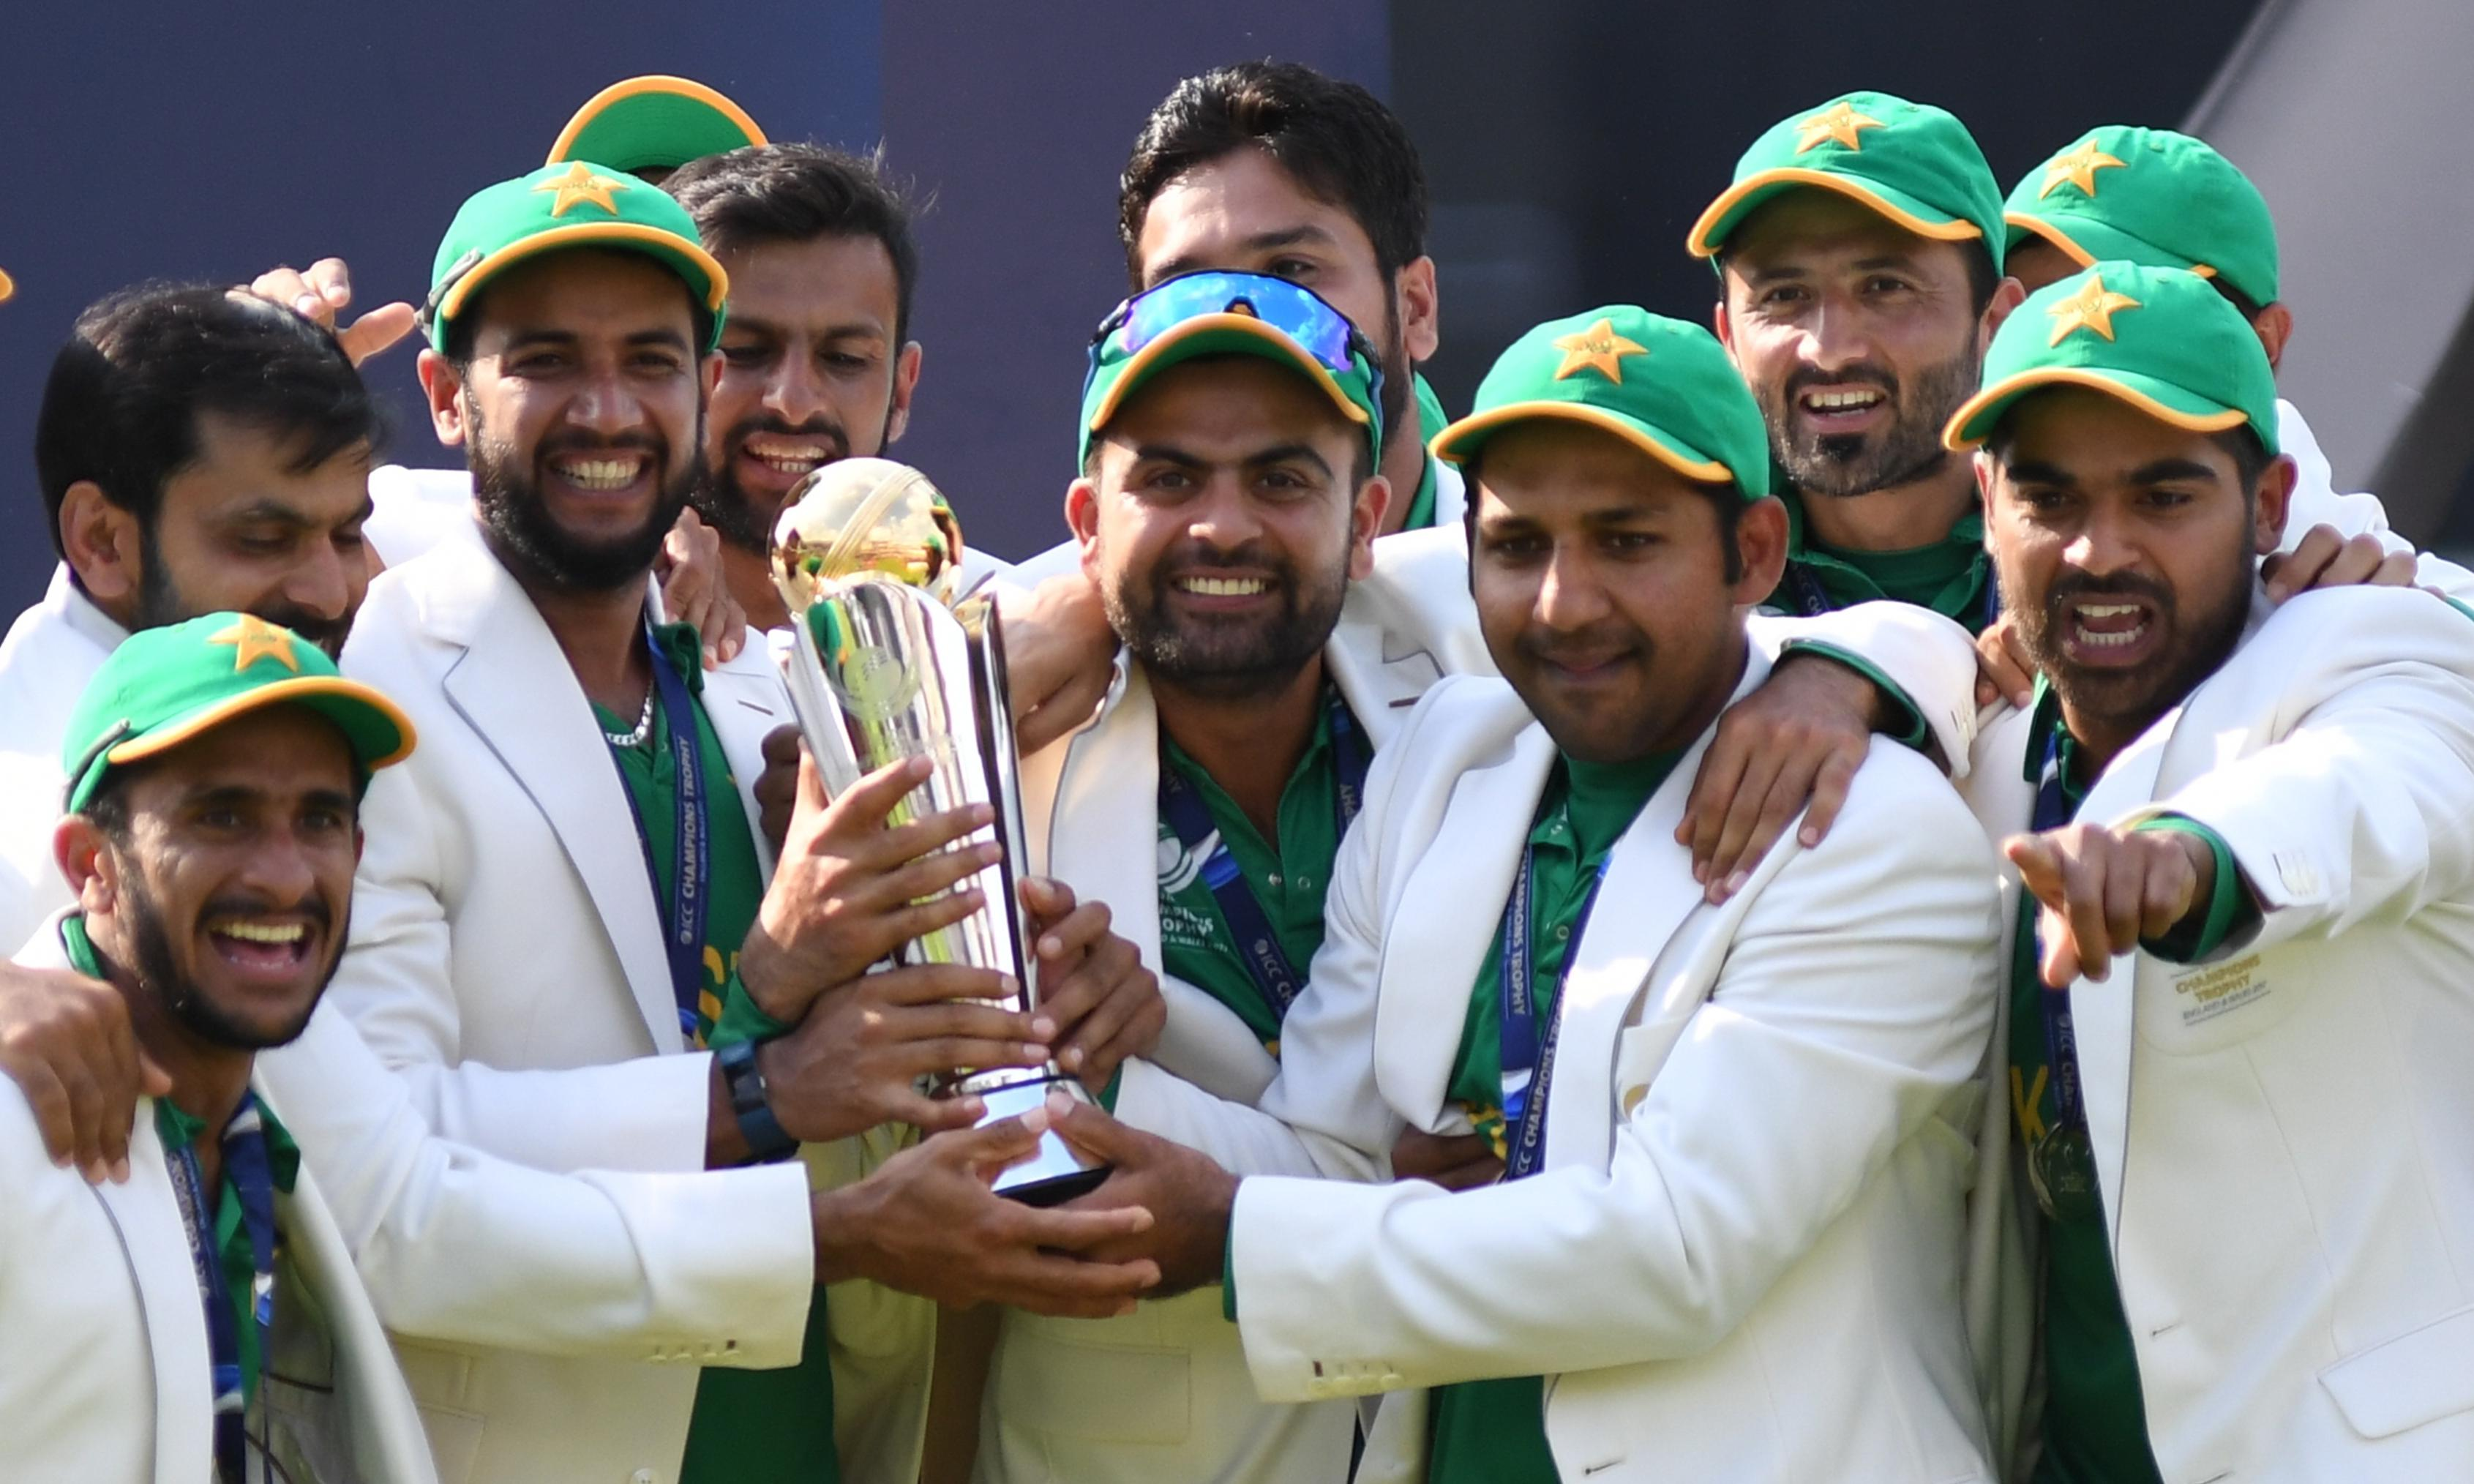 Amnesty International: fans arrested in India for cheering Pakistan win 'must be freed'